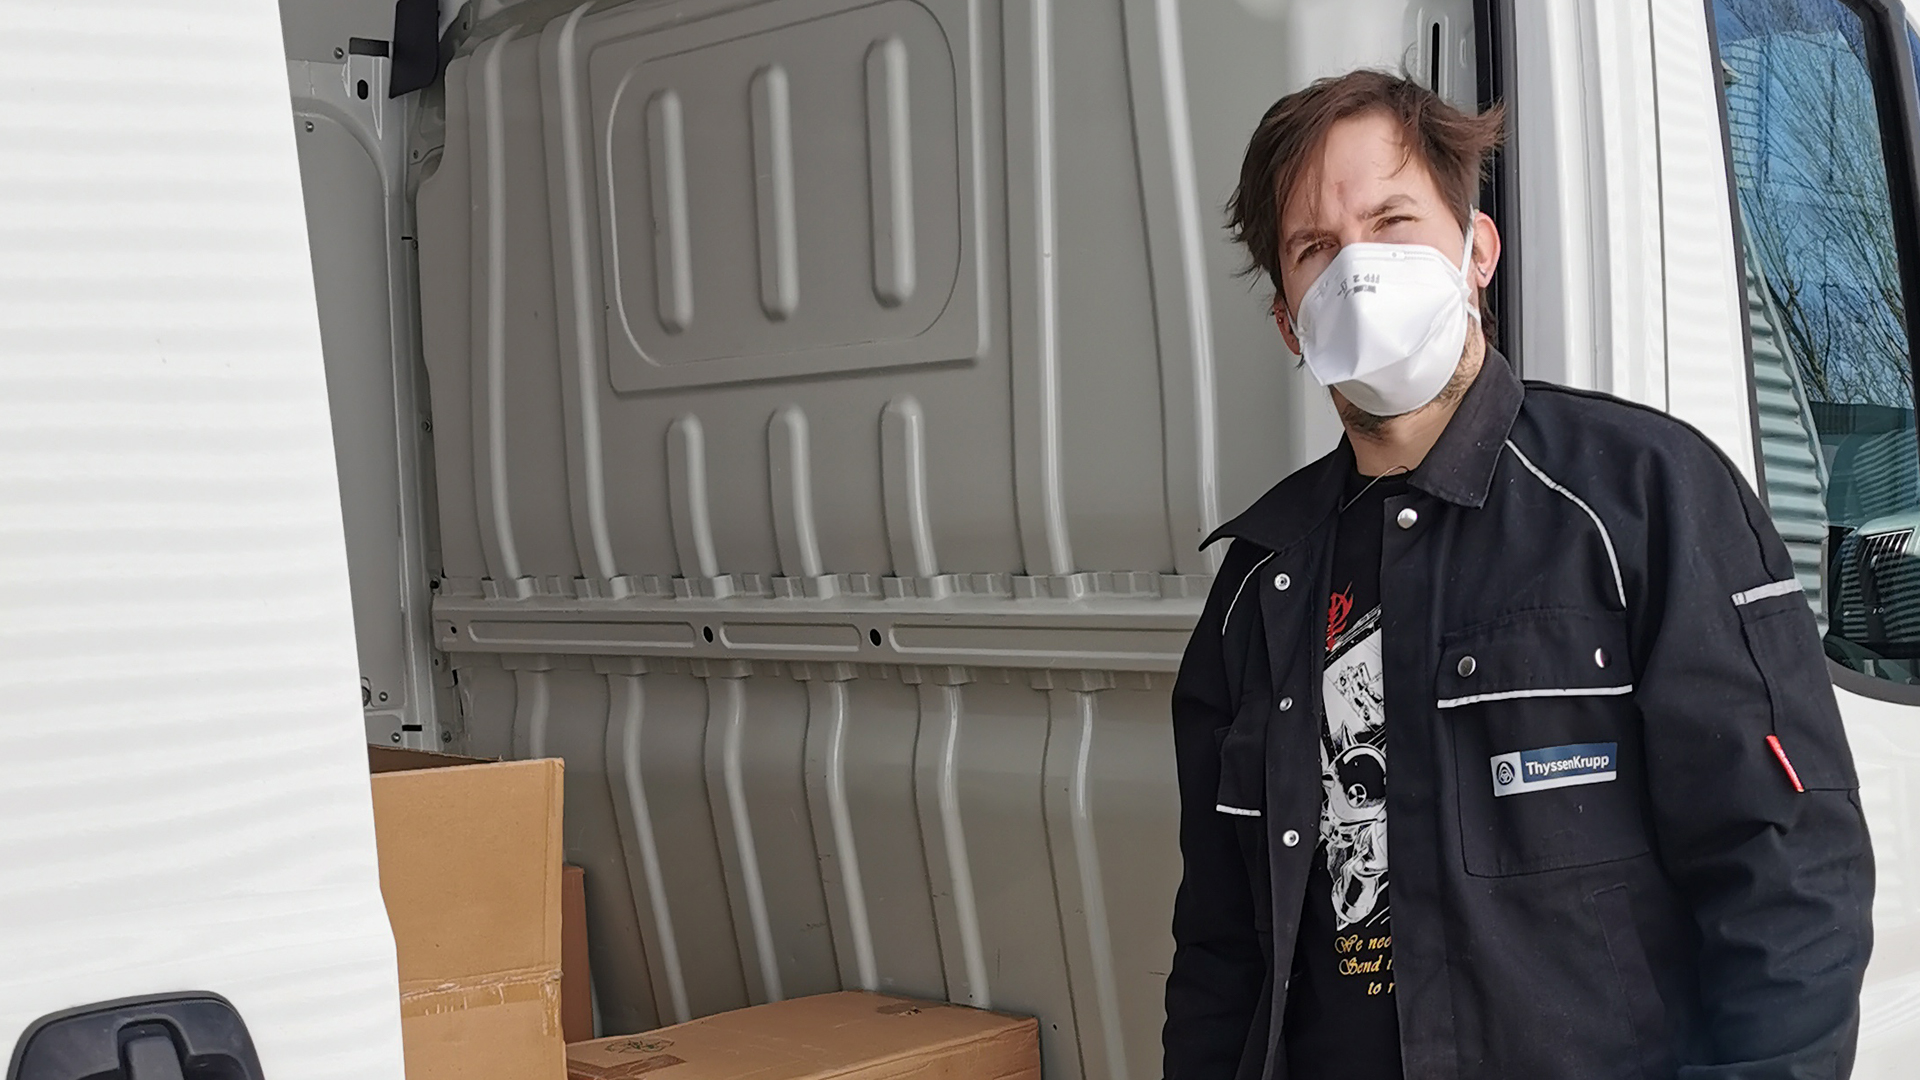 Plant Technology donates and supplies breathing masks to hospitals in Dortmund and the surrounding area.